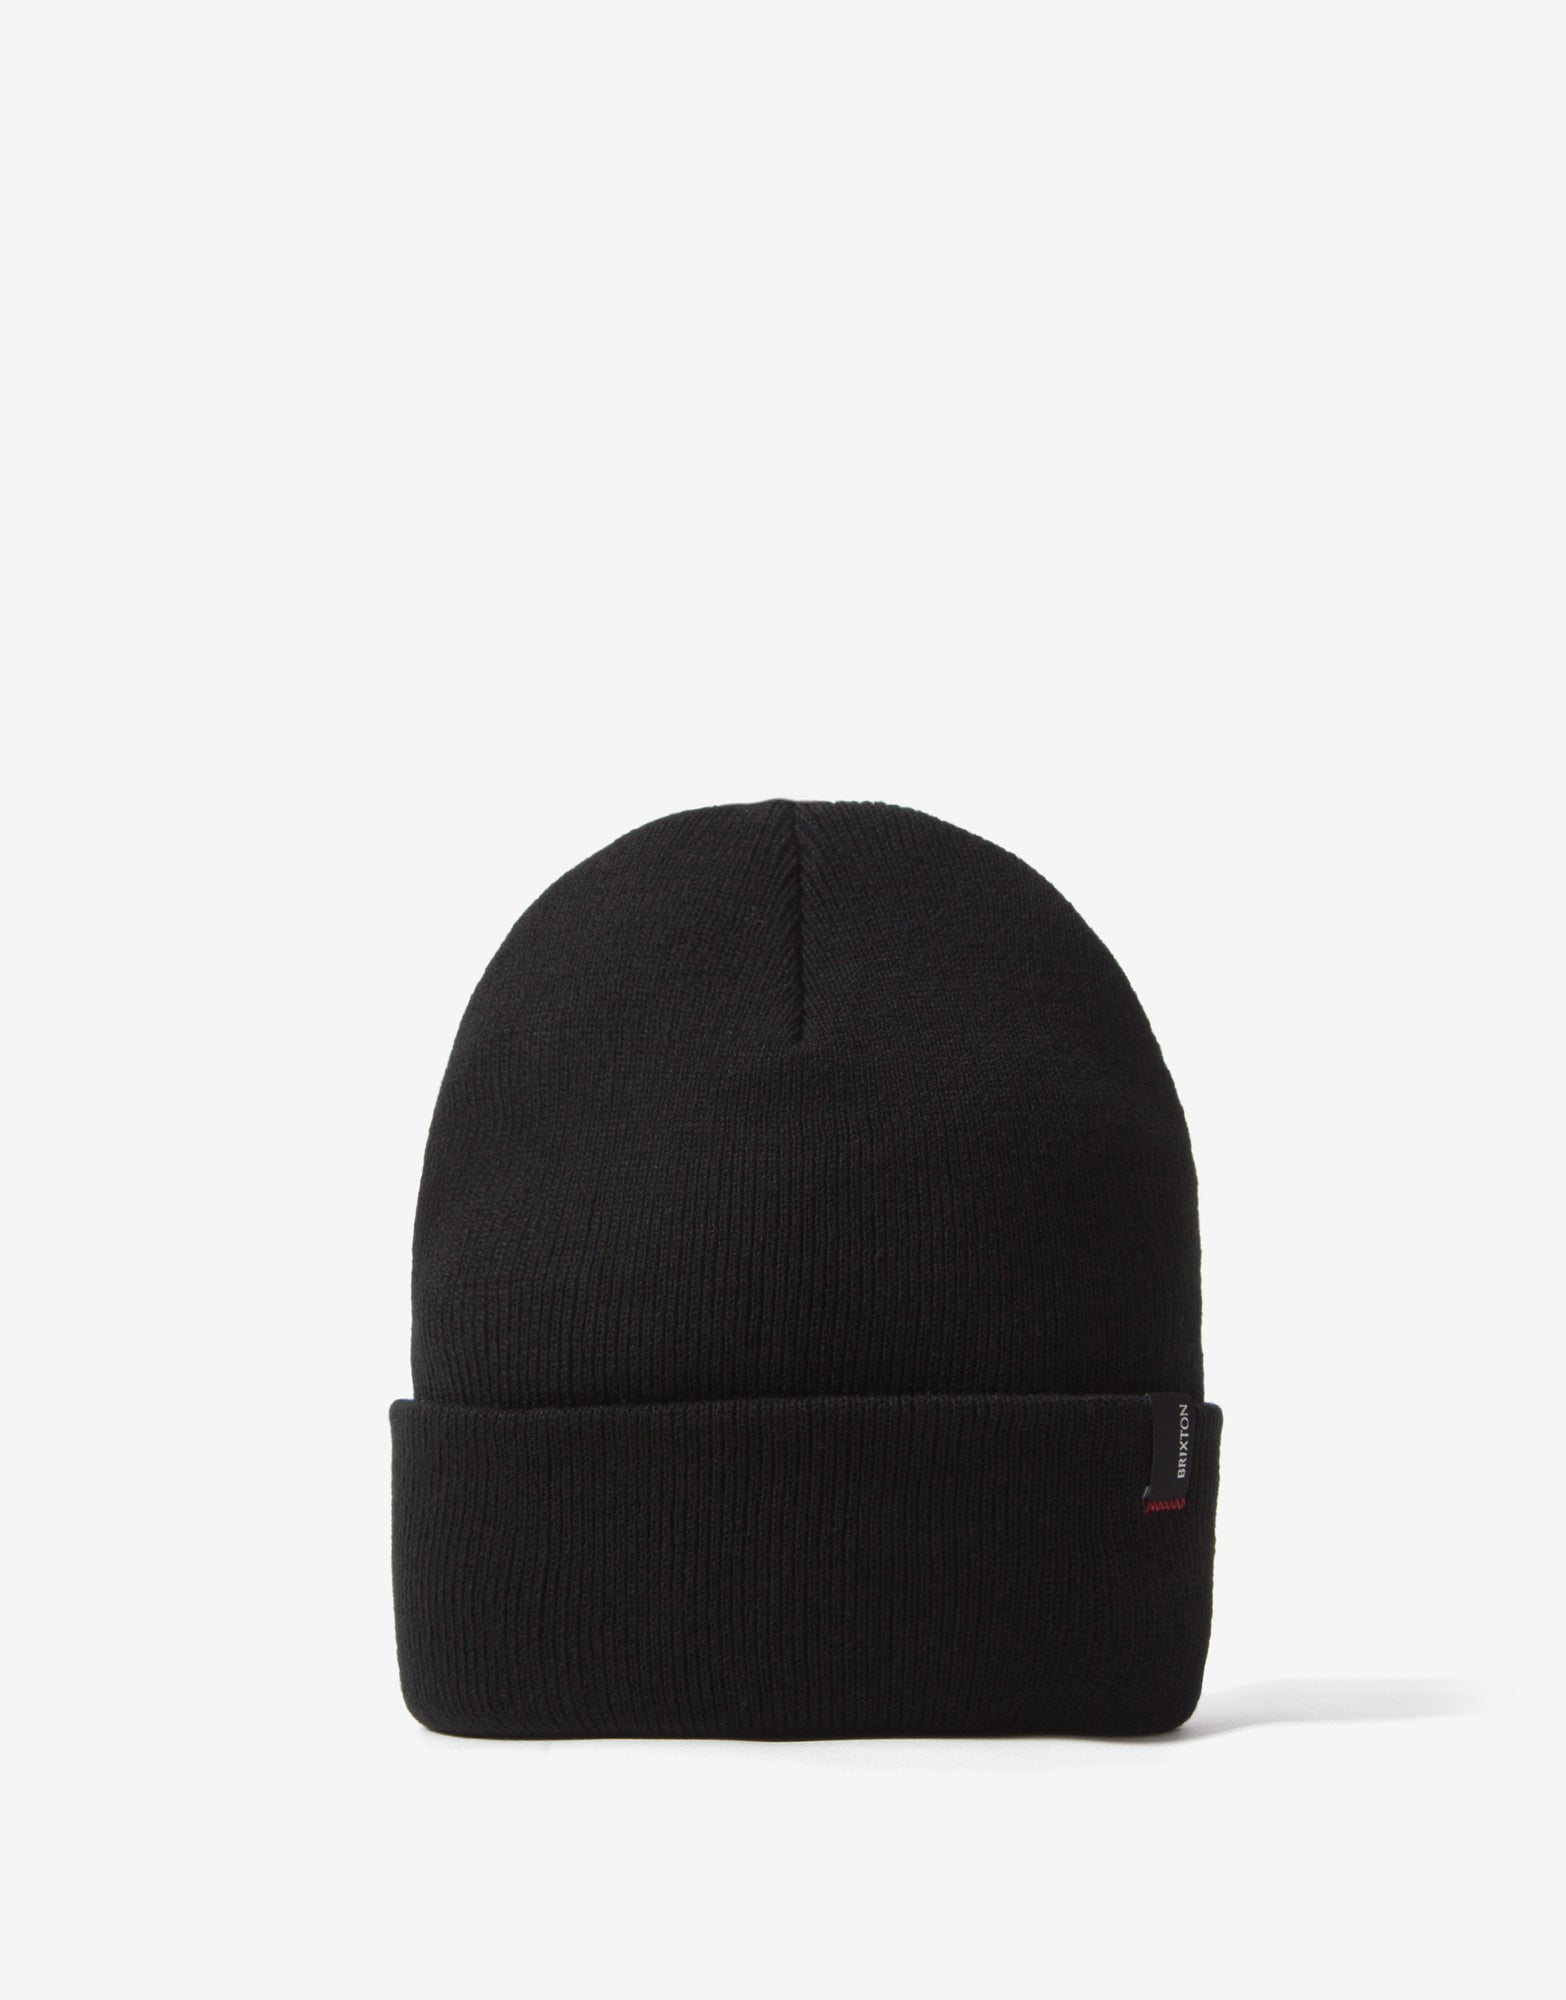 Brixton Harbor Watch Cap Beanie - Black